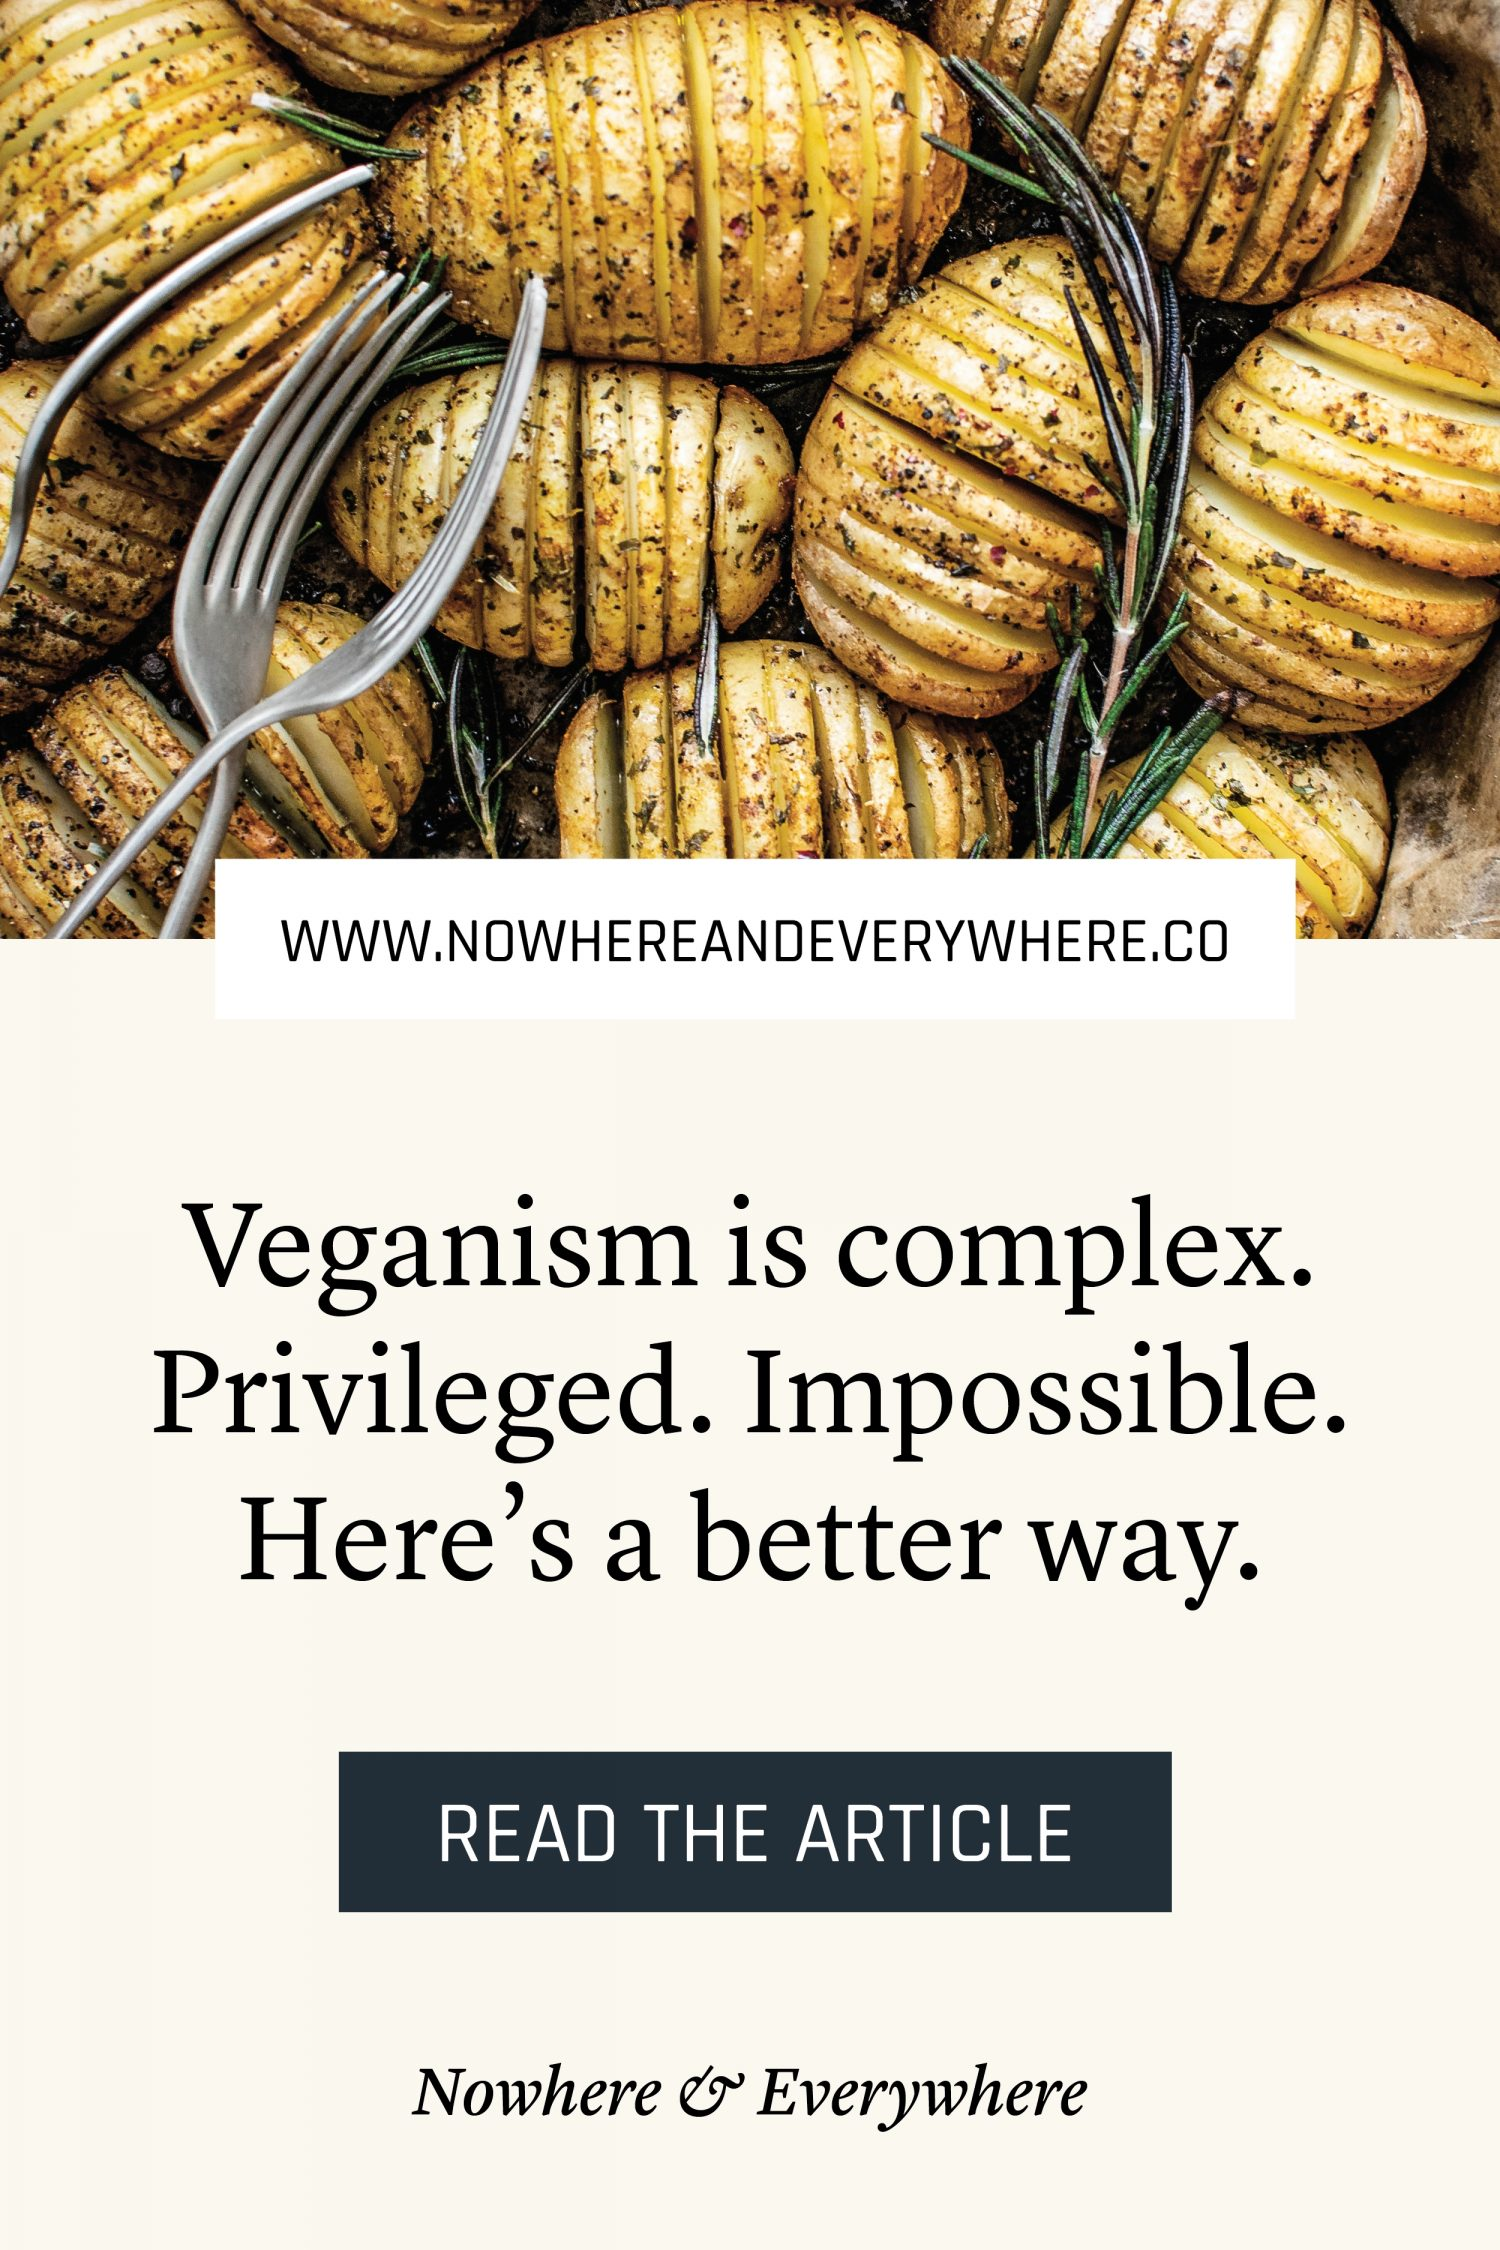 No Such Thing As A Perfect Vegan - Colonialism, Industrialized Food, Privilege, Intersectional, Factory Farm, Wool, Honey - Nowhere & Everywhere Environmentalism